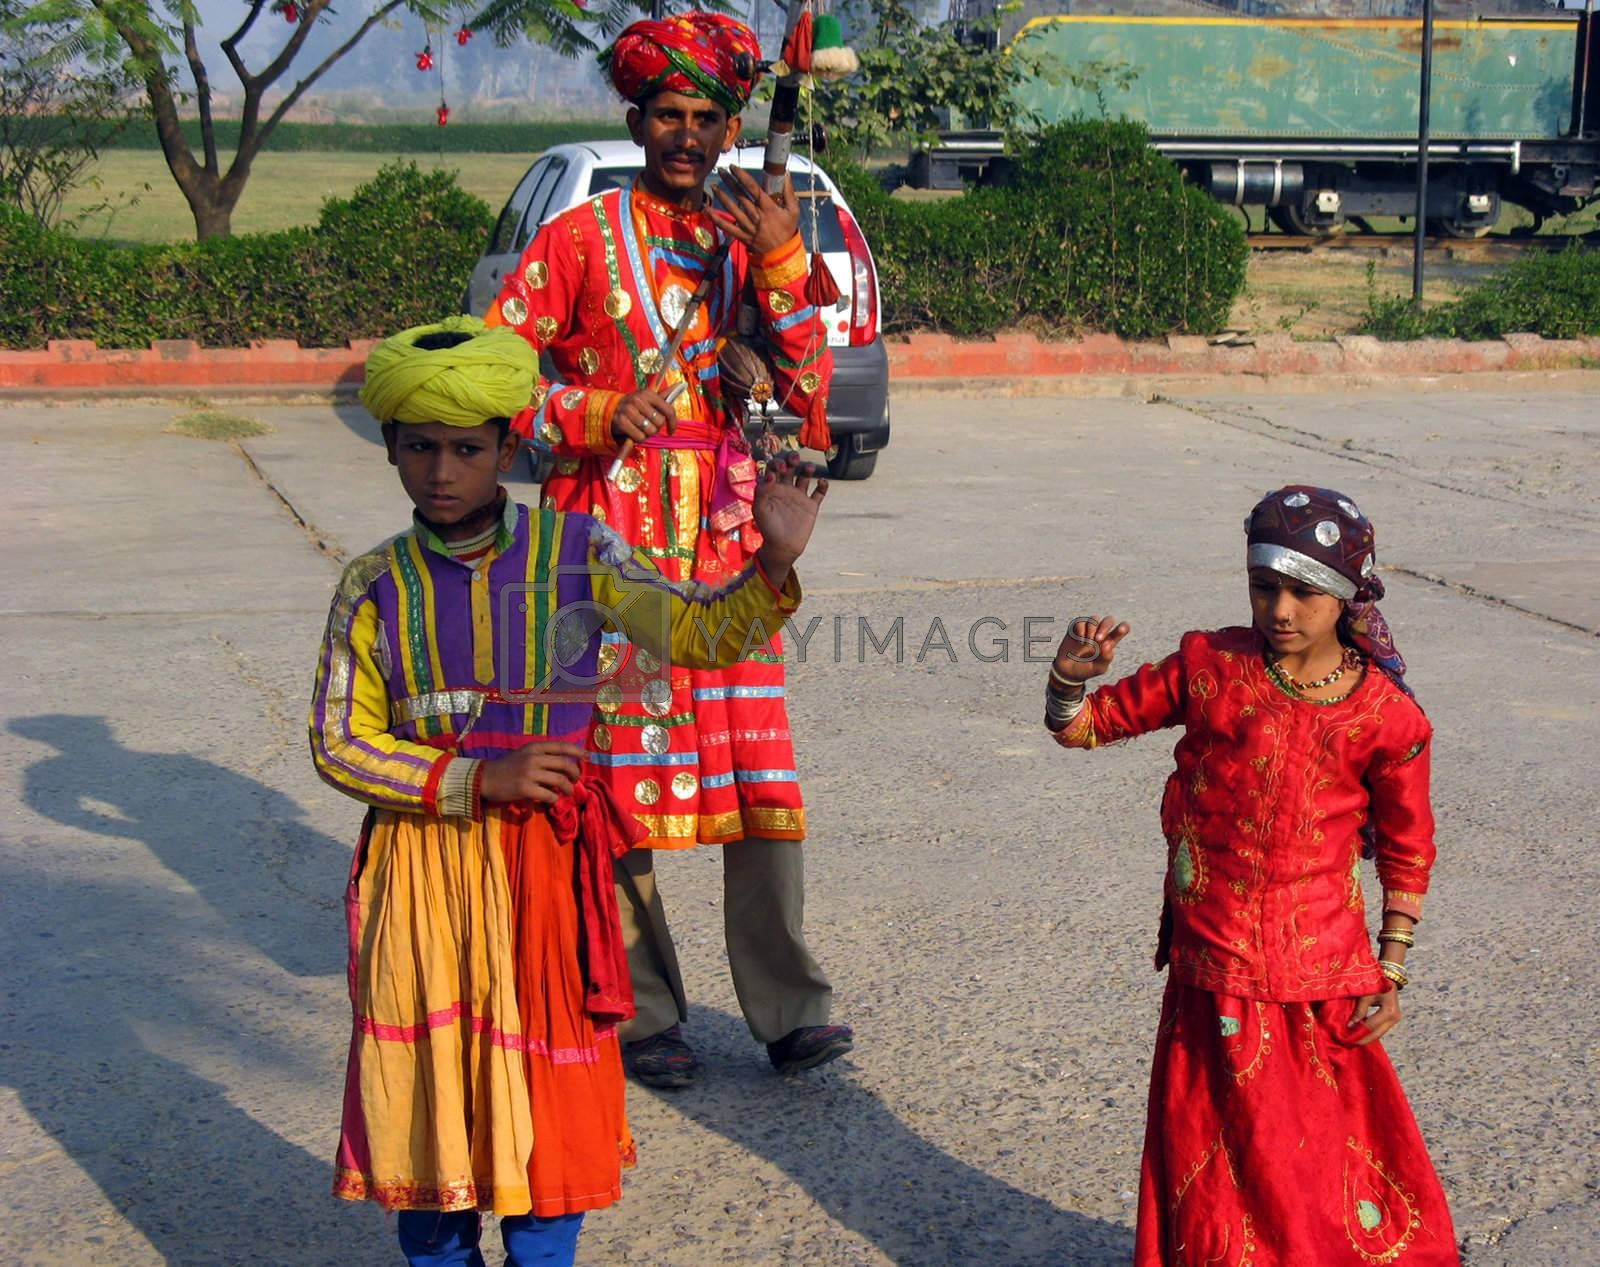 A family of street performers in India